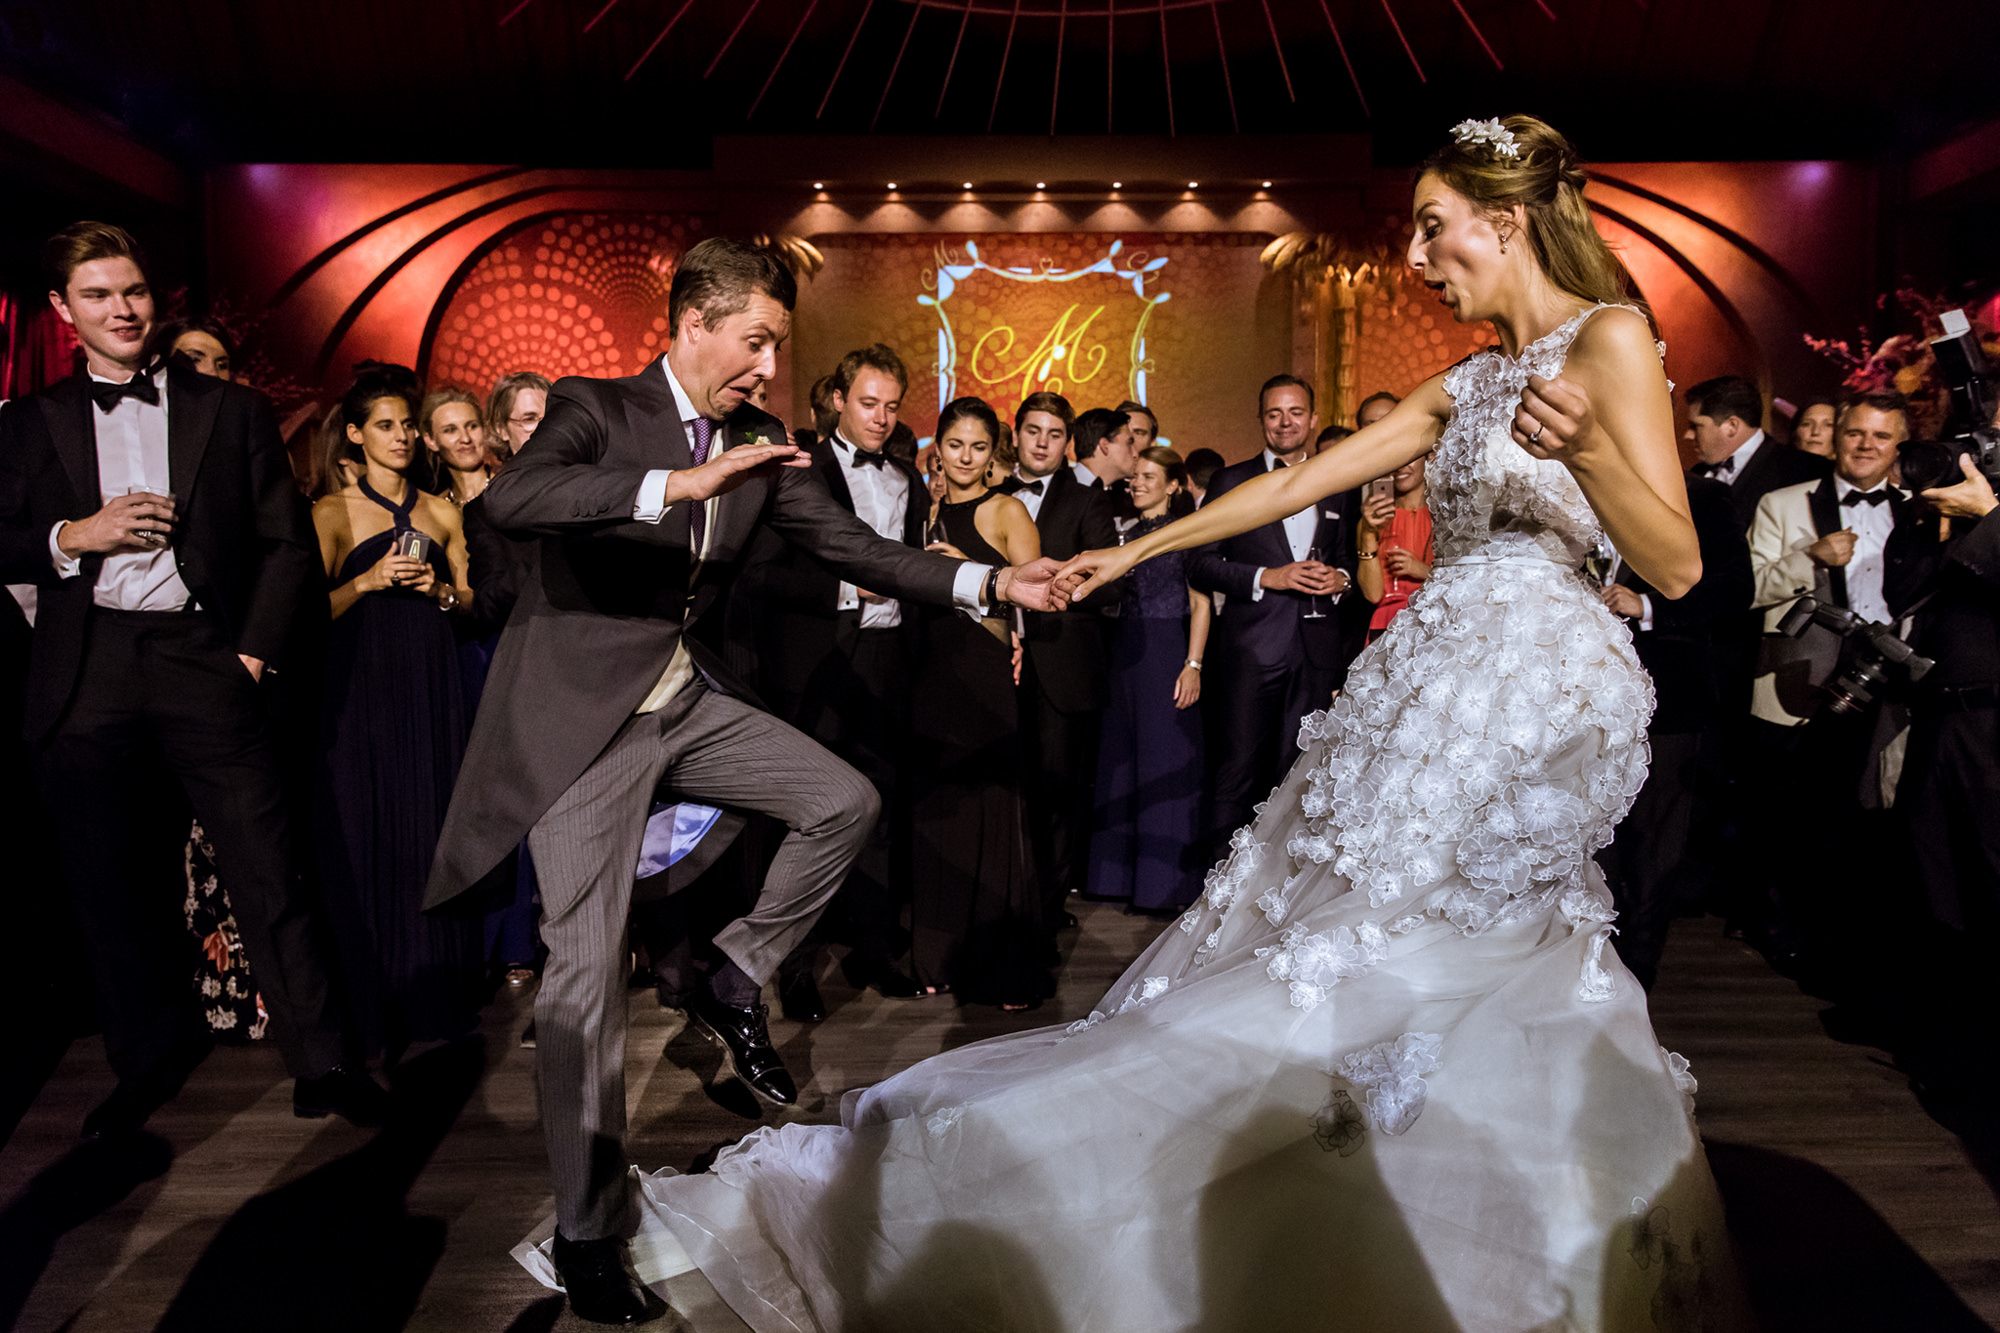 Dancing groom avoids stepping on bride's beautiful applique gown during dance photo by Fotobelle: Isabelle Hattink